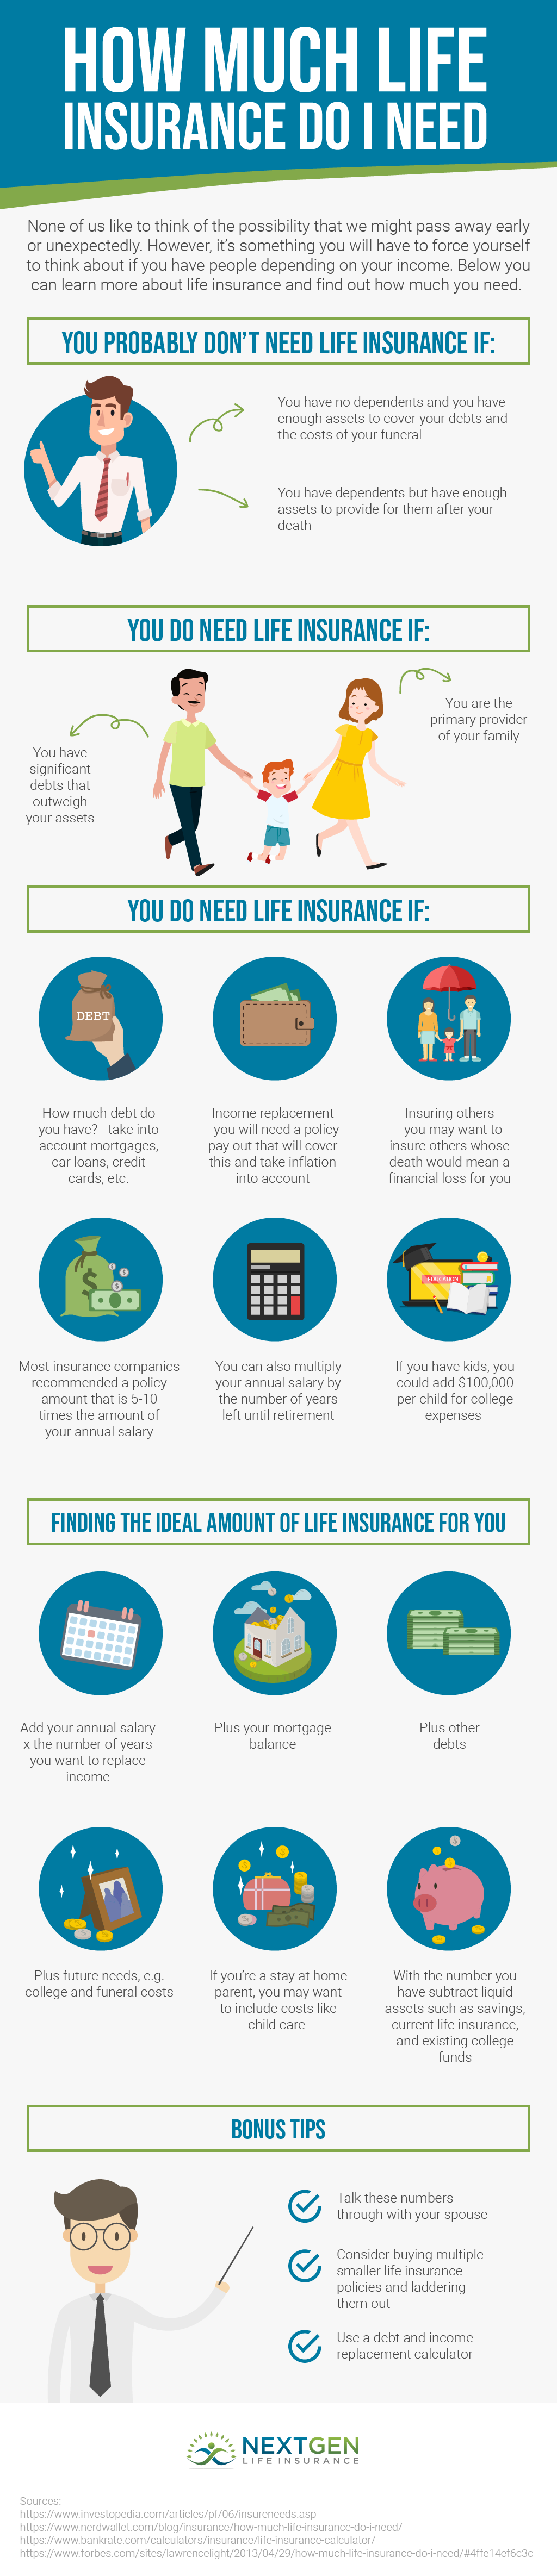 How Much Life Insurance Do I Need Infographic